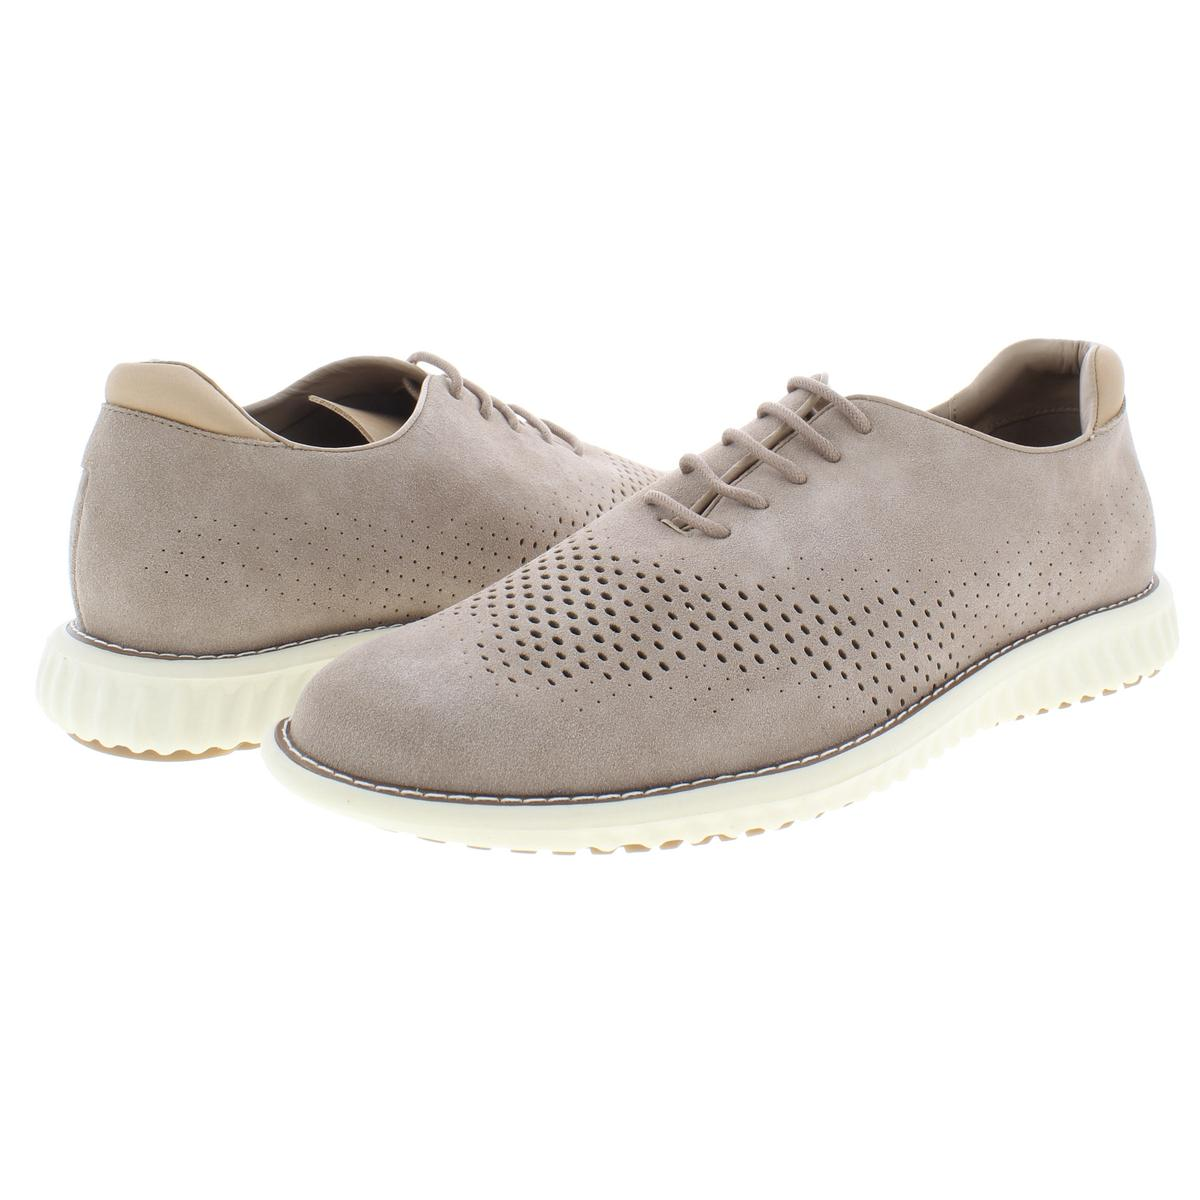 Steve Madden Mens Vaelen Suede Perforated Lace-Up Oxfords Sneakers BHFO 9910